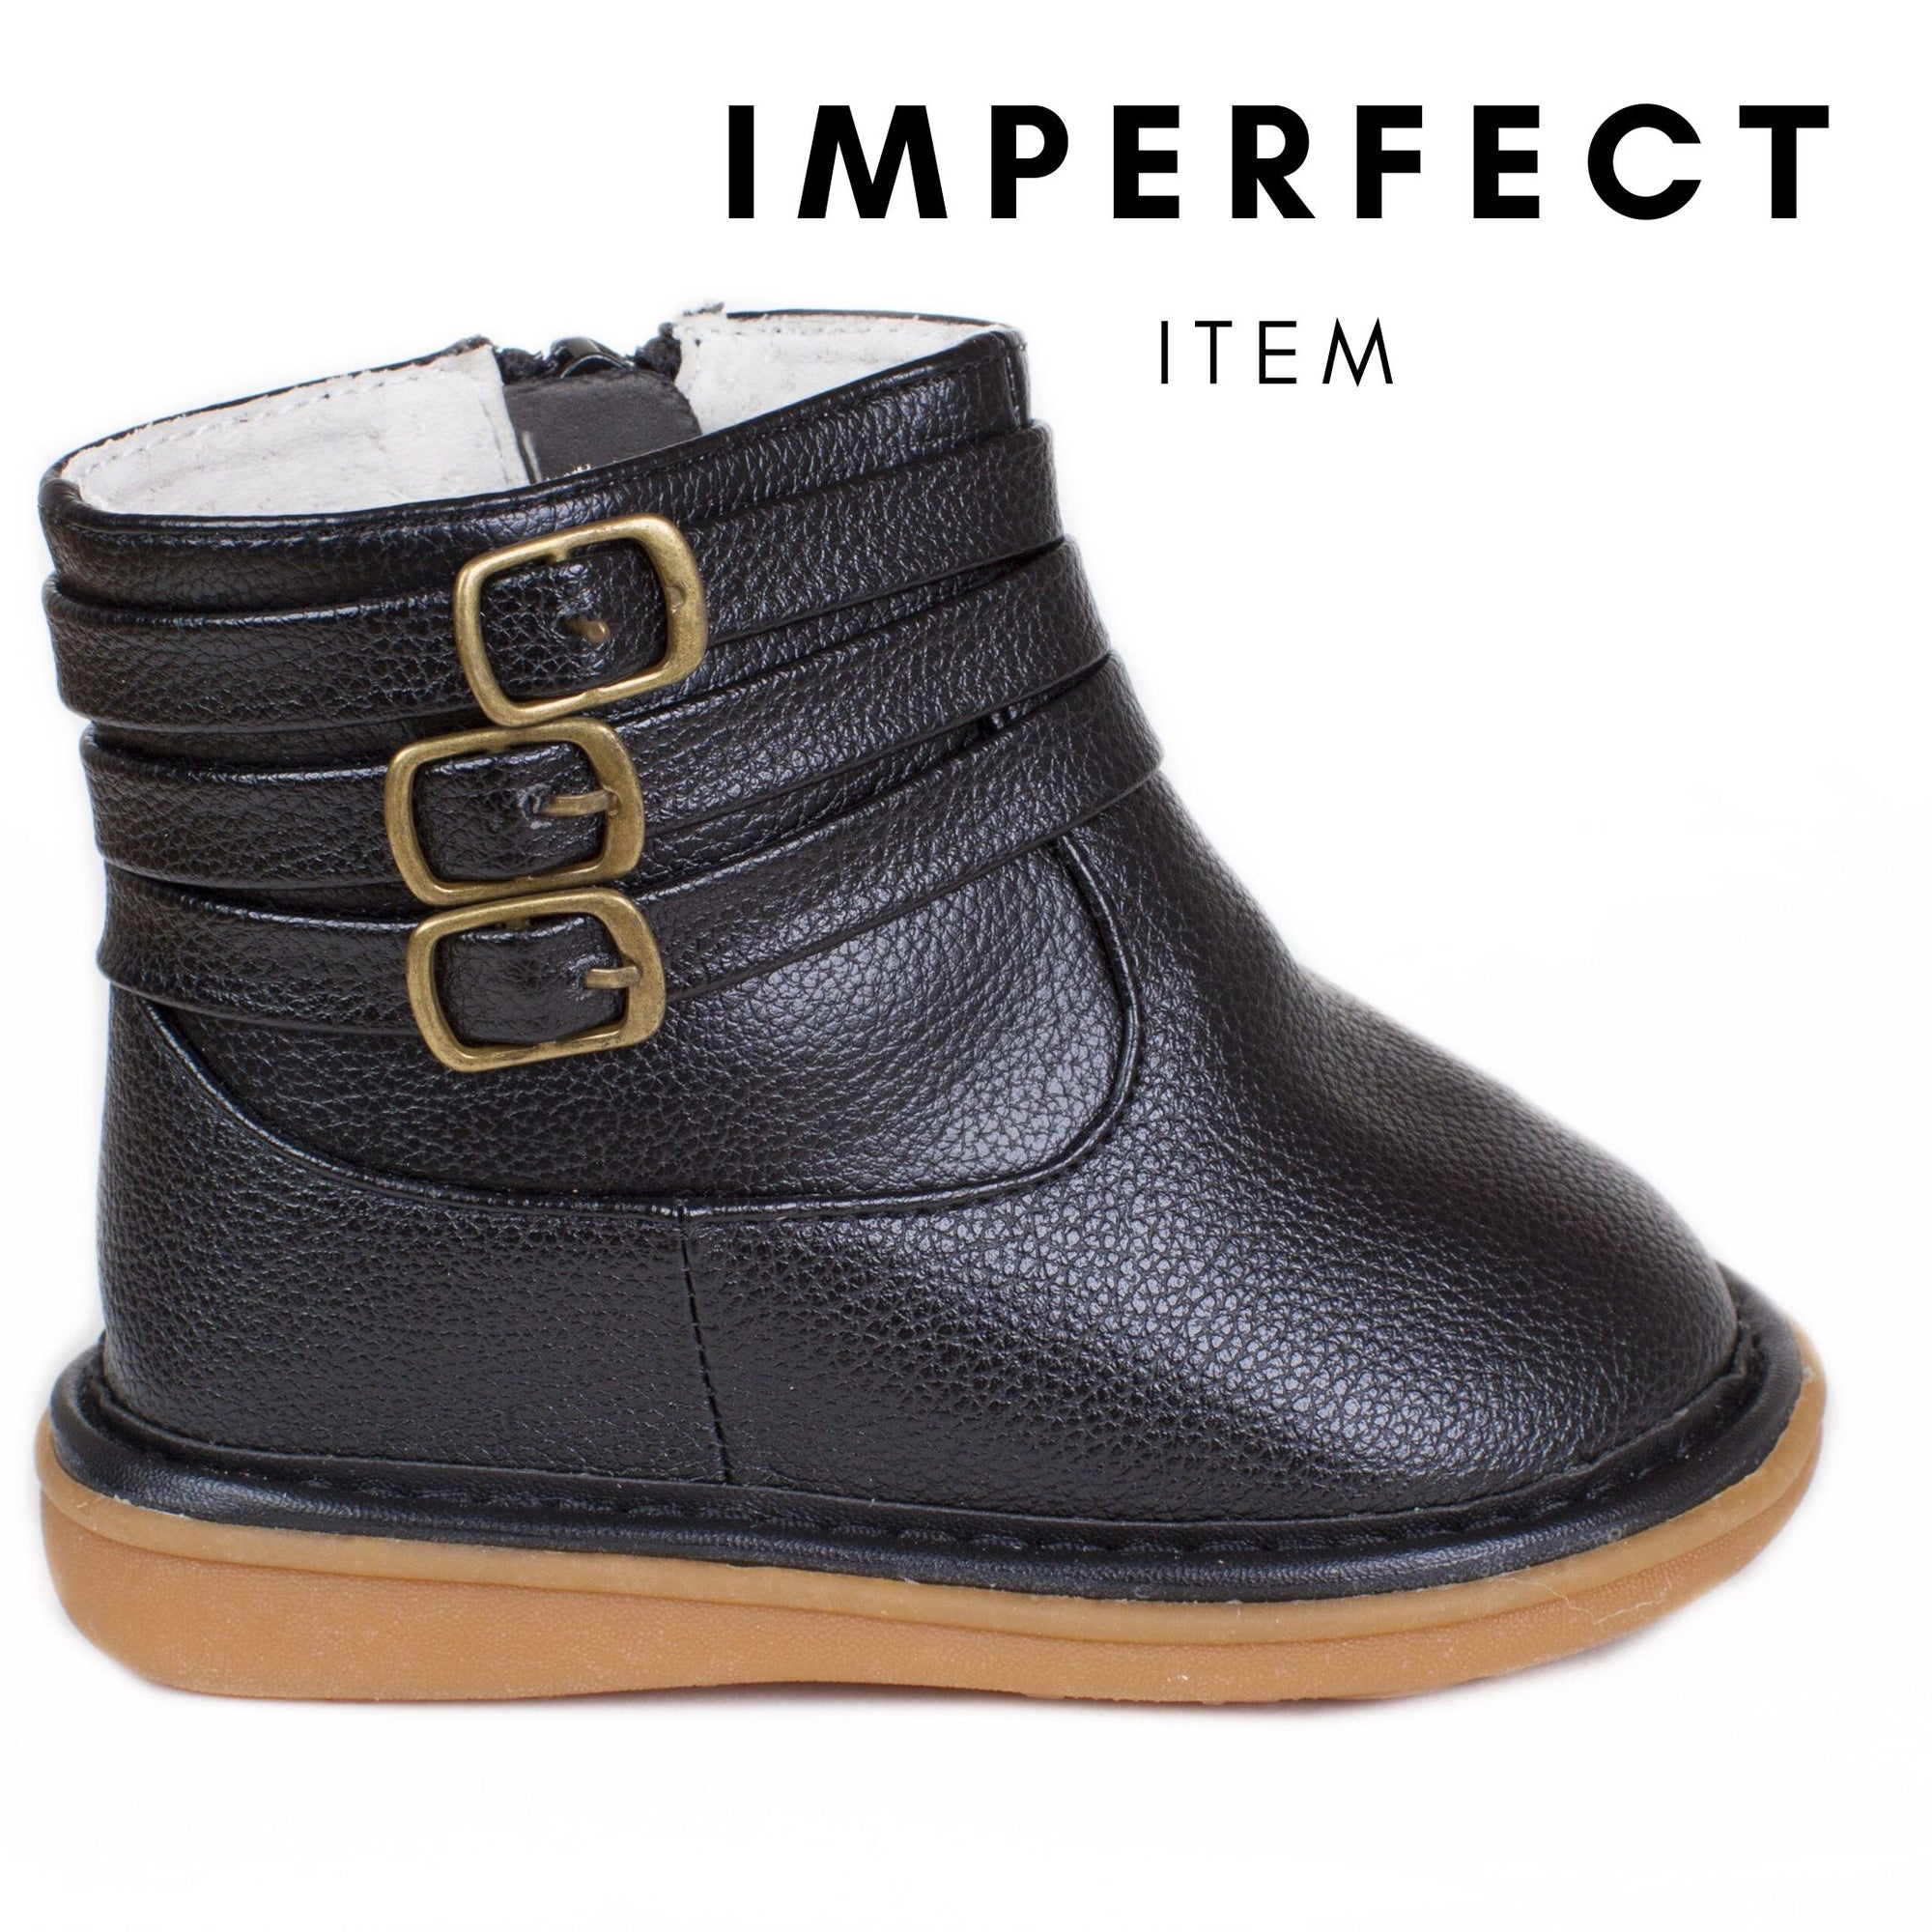 Presley Black Boot (IMPERFECT)